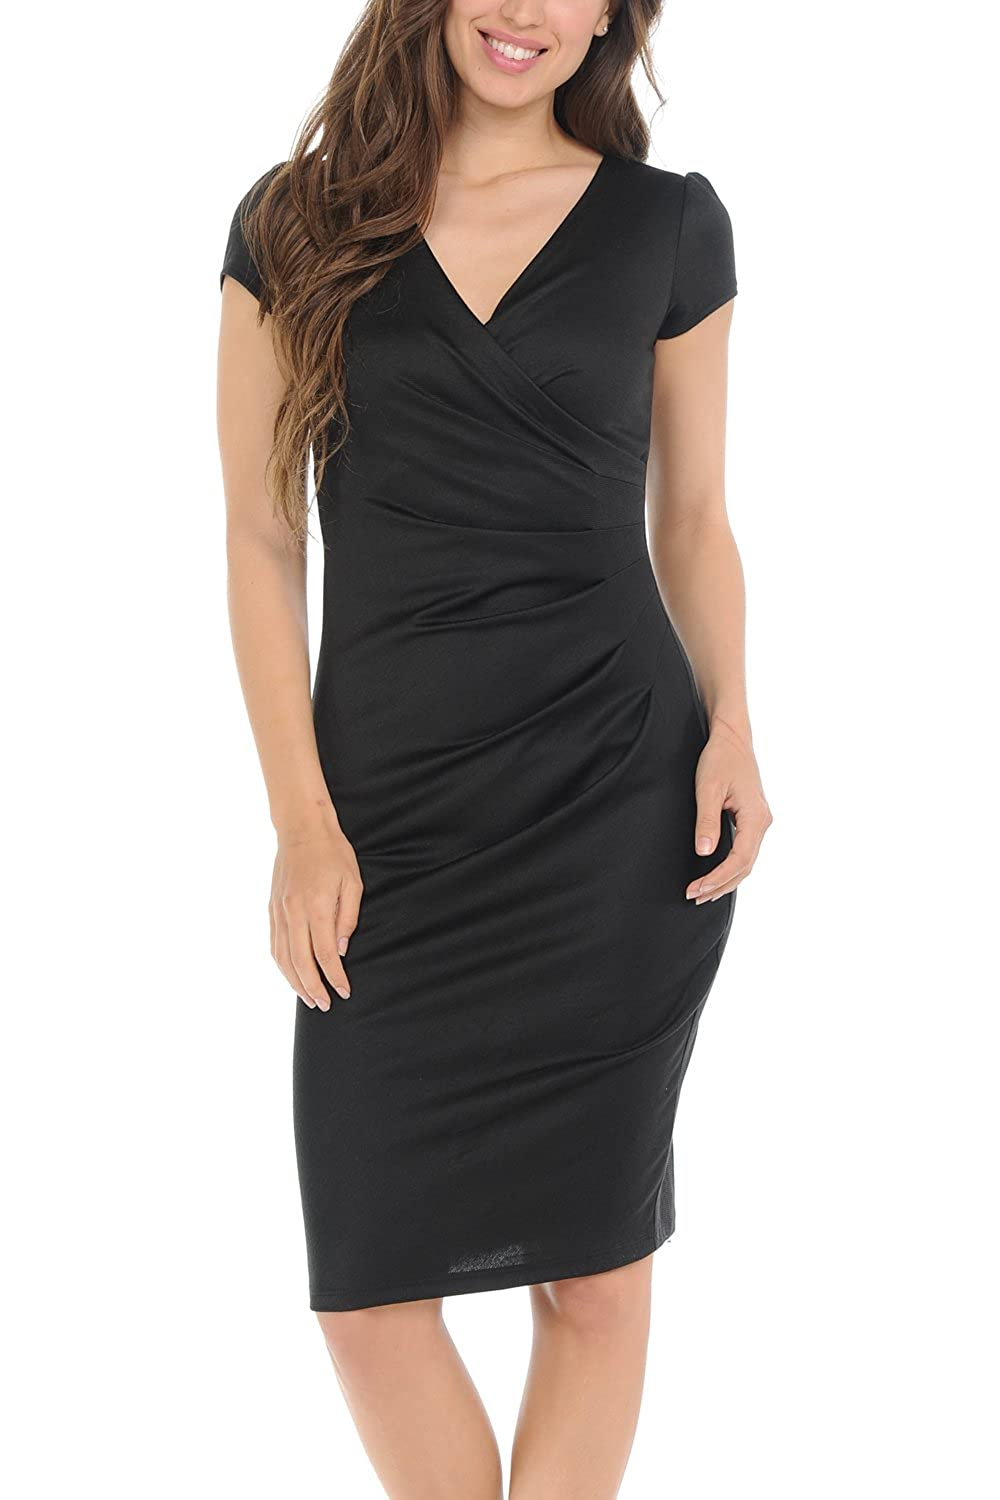 24e3f9064a Top1  Auliné Collection Womens V-neck Zip Up Work Office Career Side Wrap  Sheath Dress